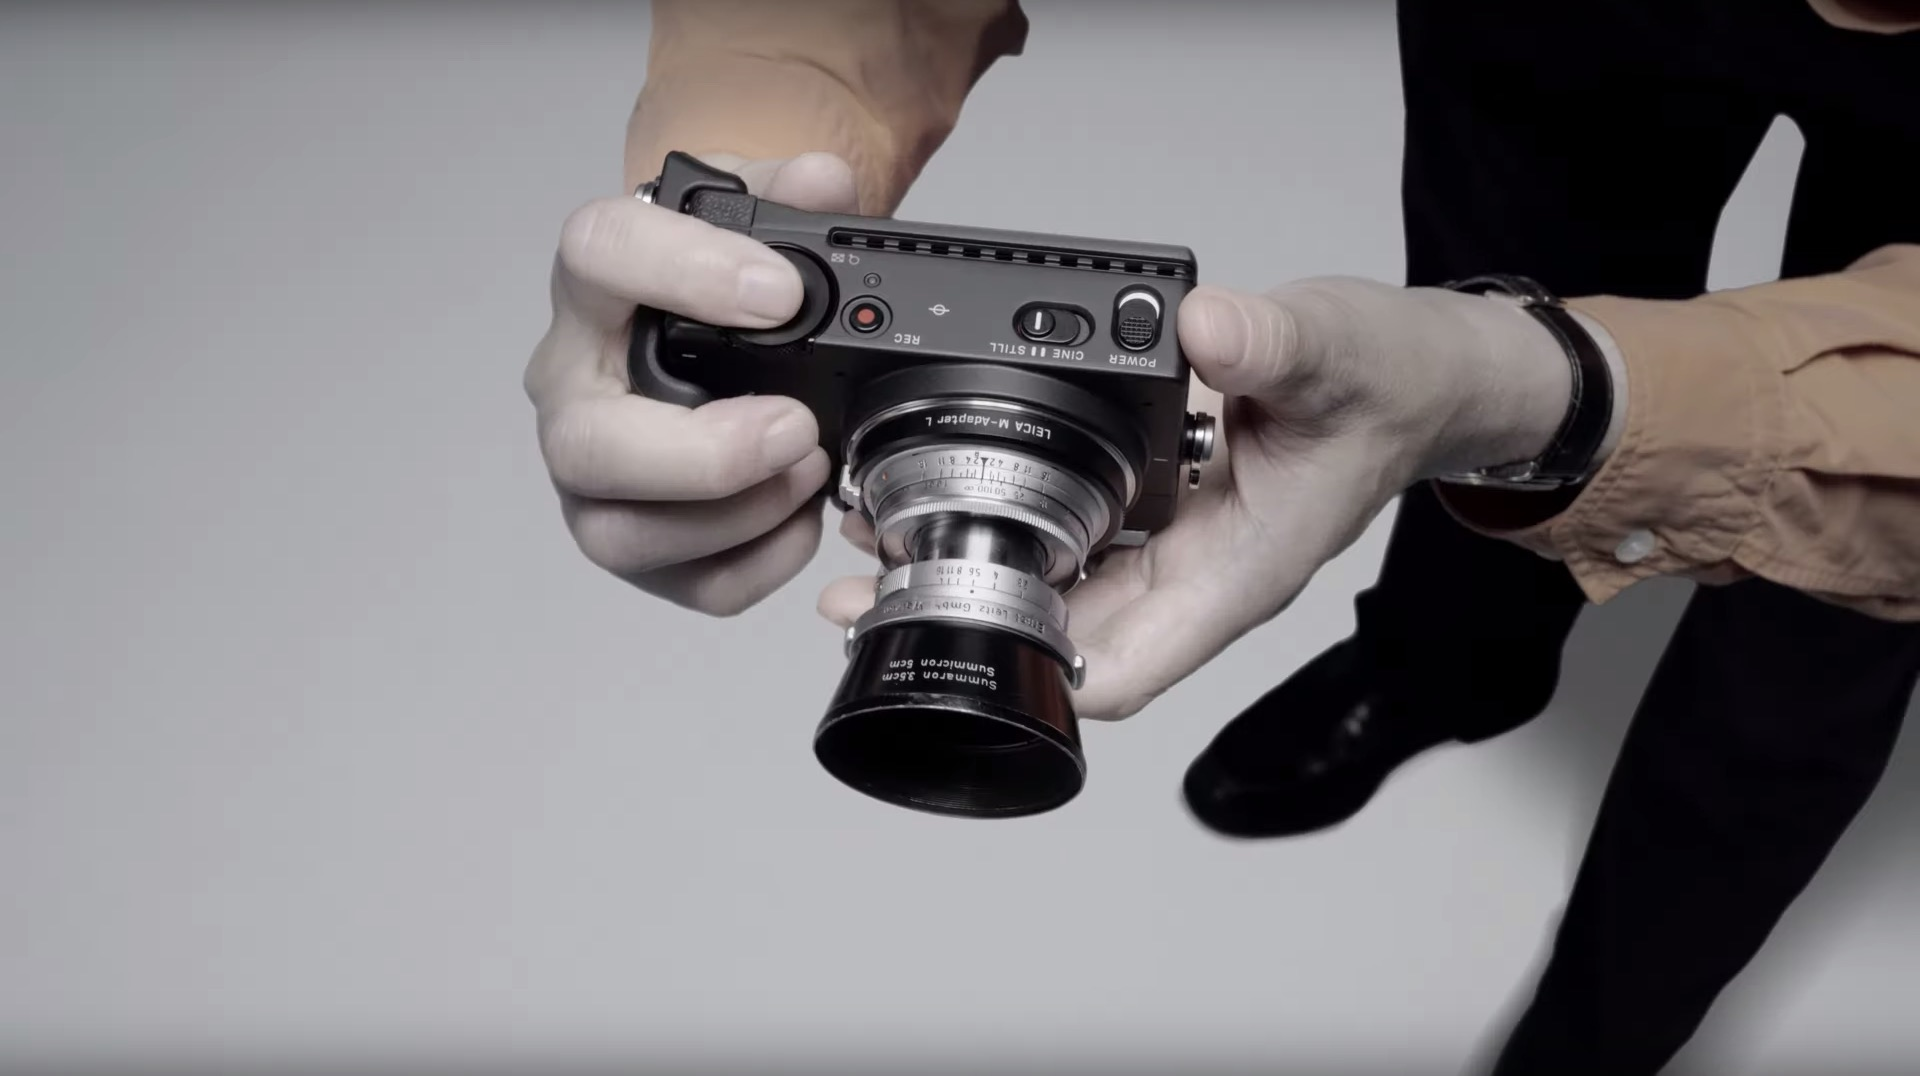 Sigma fp is a new, ultra compact full frame. There was no such camera yet